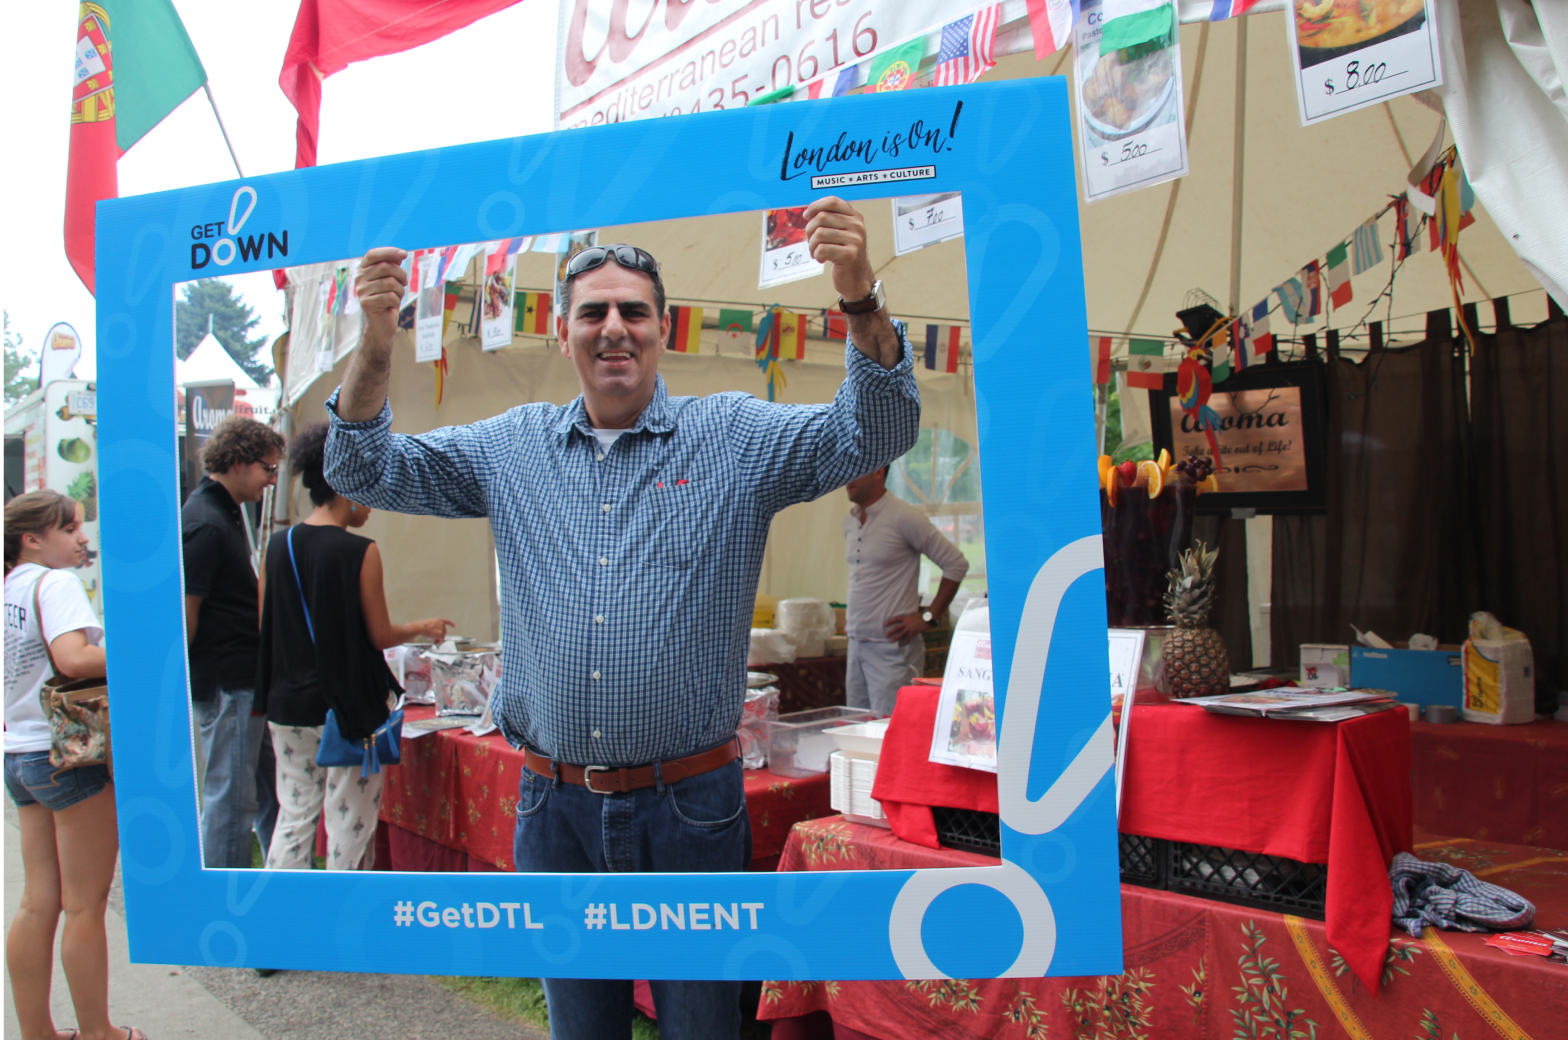 Man posing with the #GetDTL photo frame